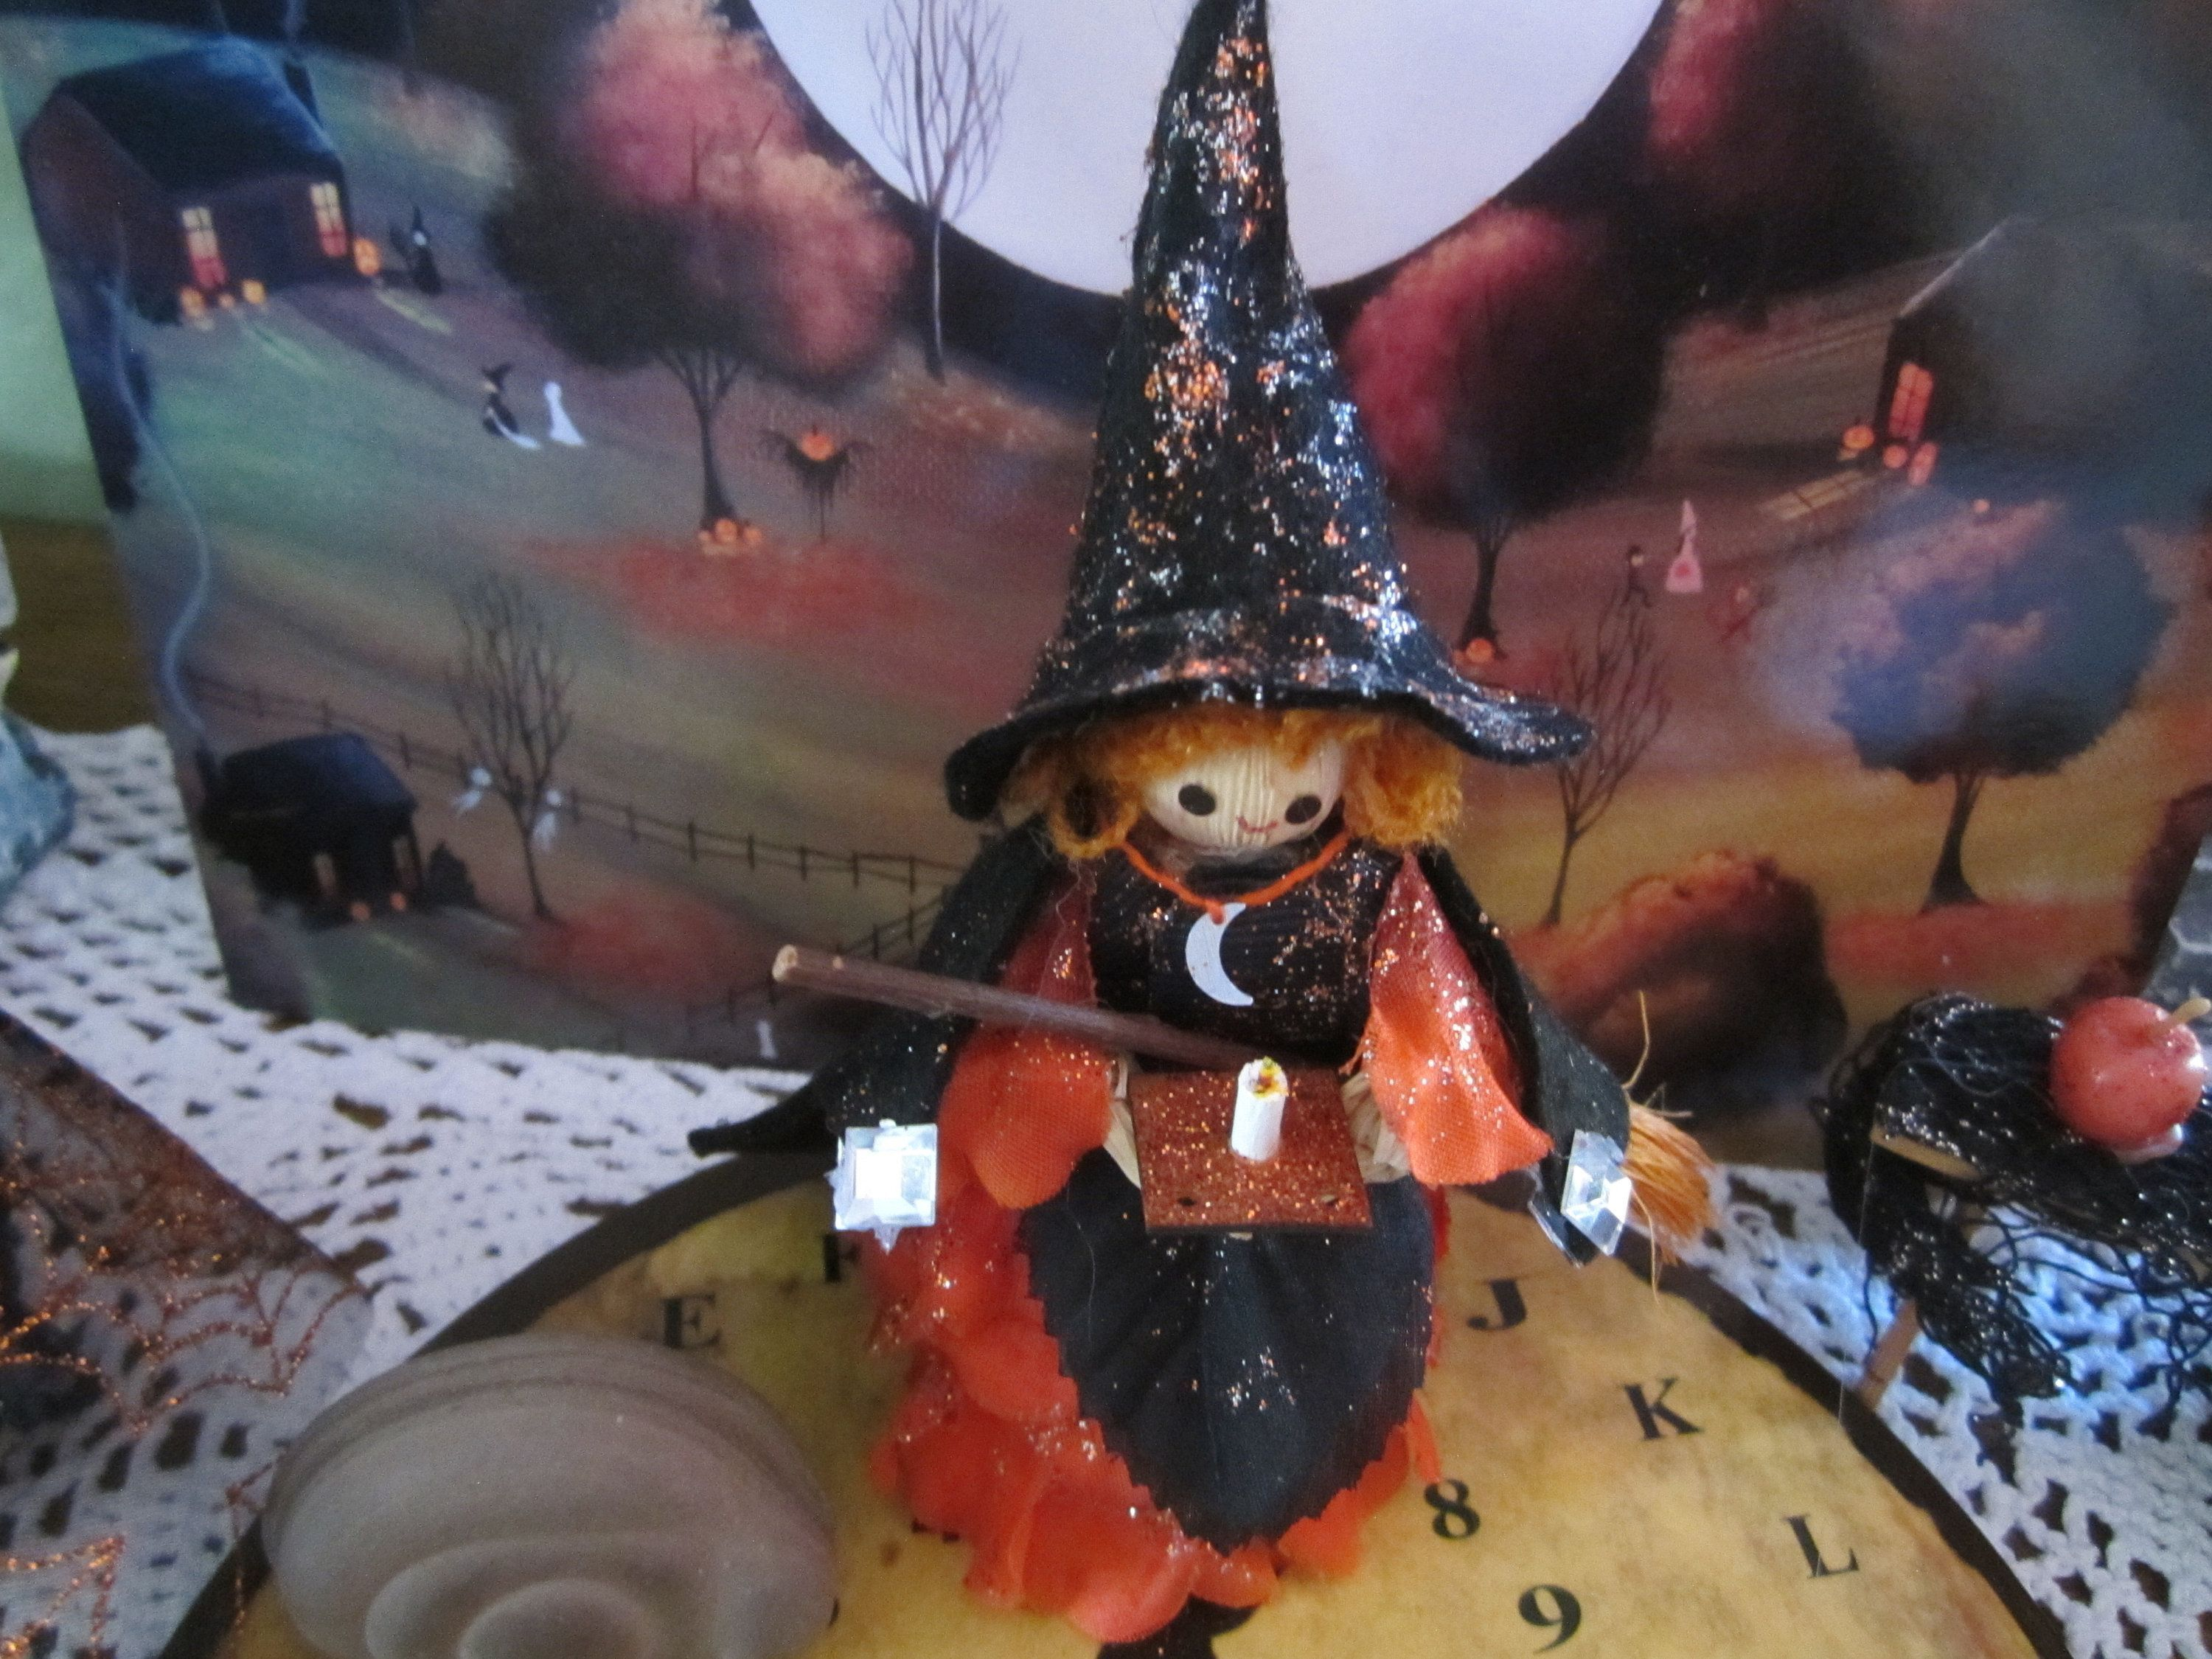 Halloween Kitchen Witch, Samhain Altar Corn Doll Witch, Witchy Decor, Wiccan Decor, Halloween Doll, Halloween Decor, Witch Holding Candle #wiccandecor Halloween Kitchen Witch, Samhain Altar Corn Doll Witch, Witchy Decor, Wiccan Decor, Halloween Doll, Halloween Decor, Witch Holding Candle #wiccandecor Halloween Kitchen Witch, Samhain Altar Corn Doll Witch, Witchy Decor, Wiccan Decor, Halloween Doll, Halloween Decor, Witch Holding Candle #wiccandecor Halloween Kitchen Witch, Samhain Altar Corn Dol #wiccandecor